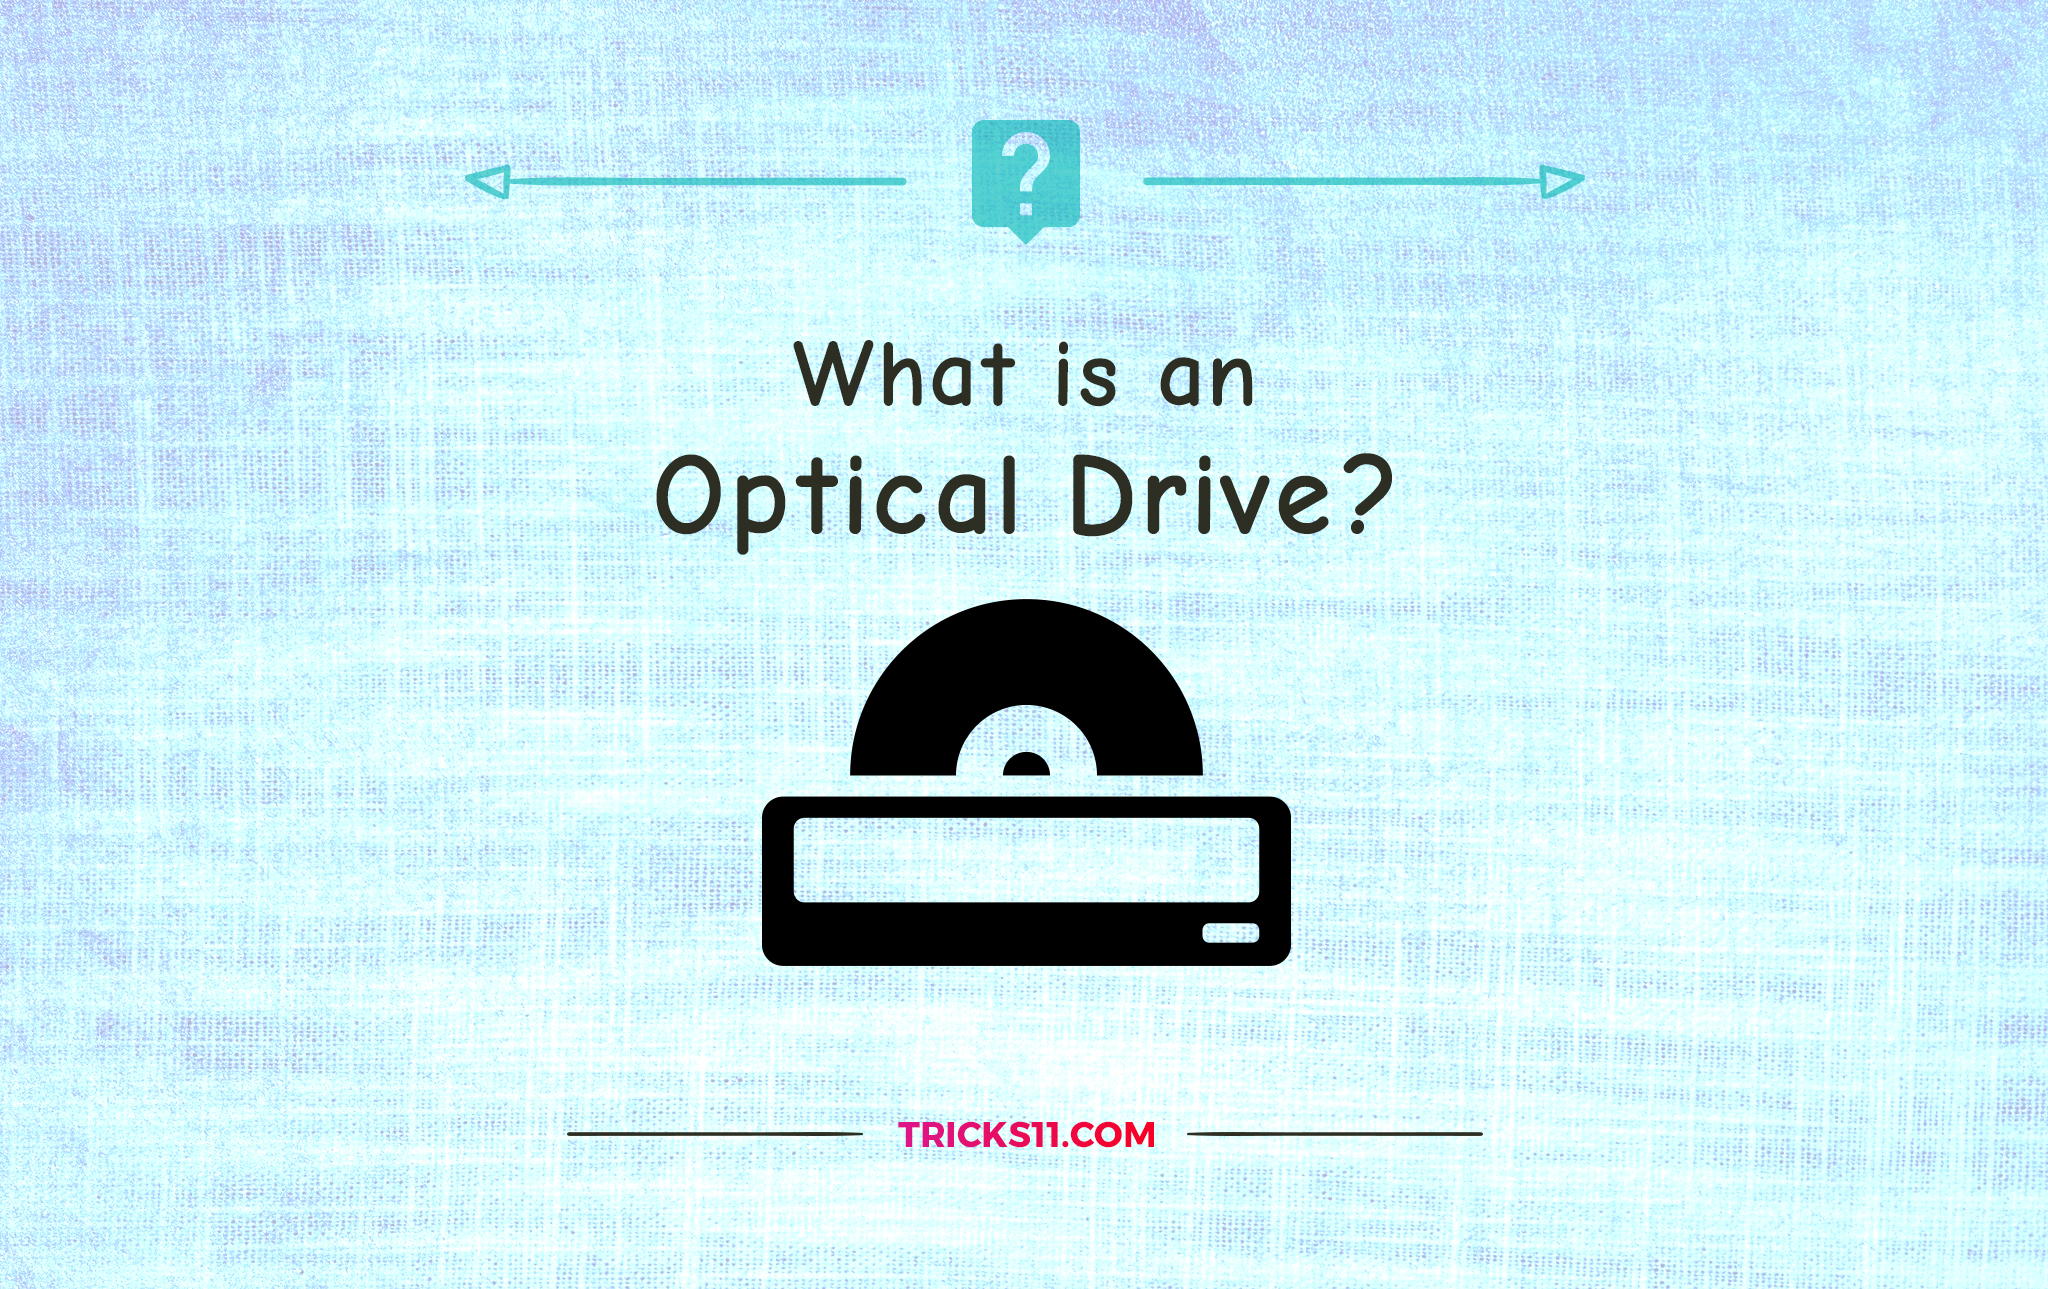 what is an Optical Drive?